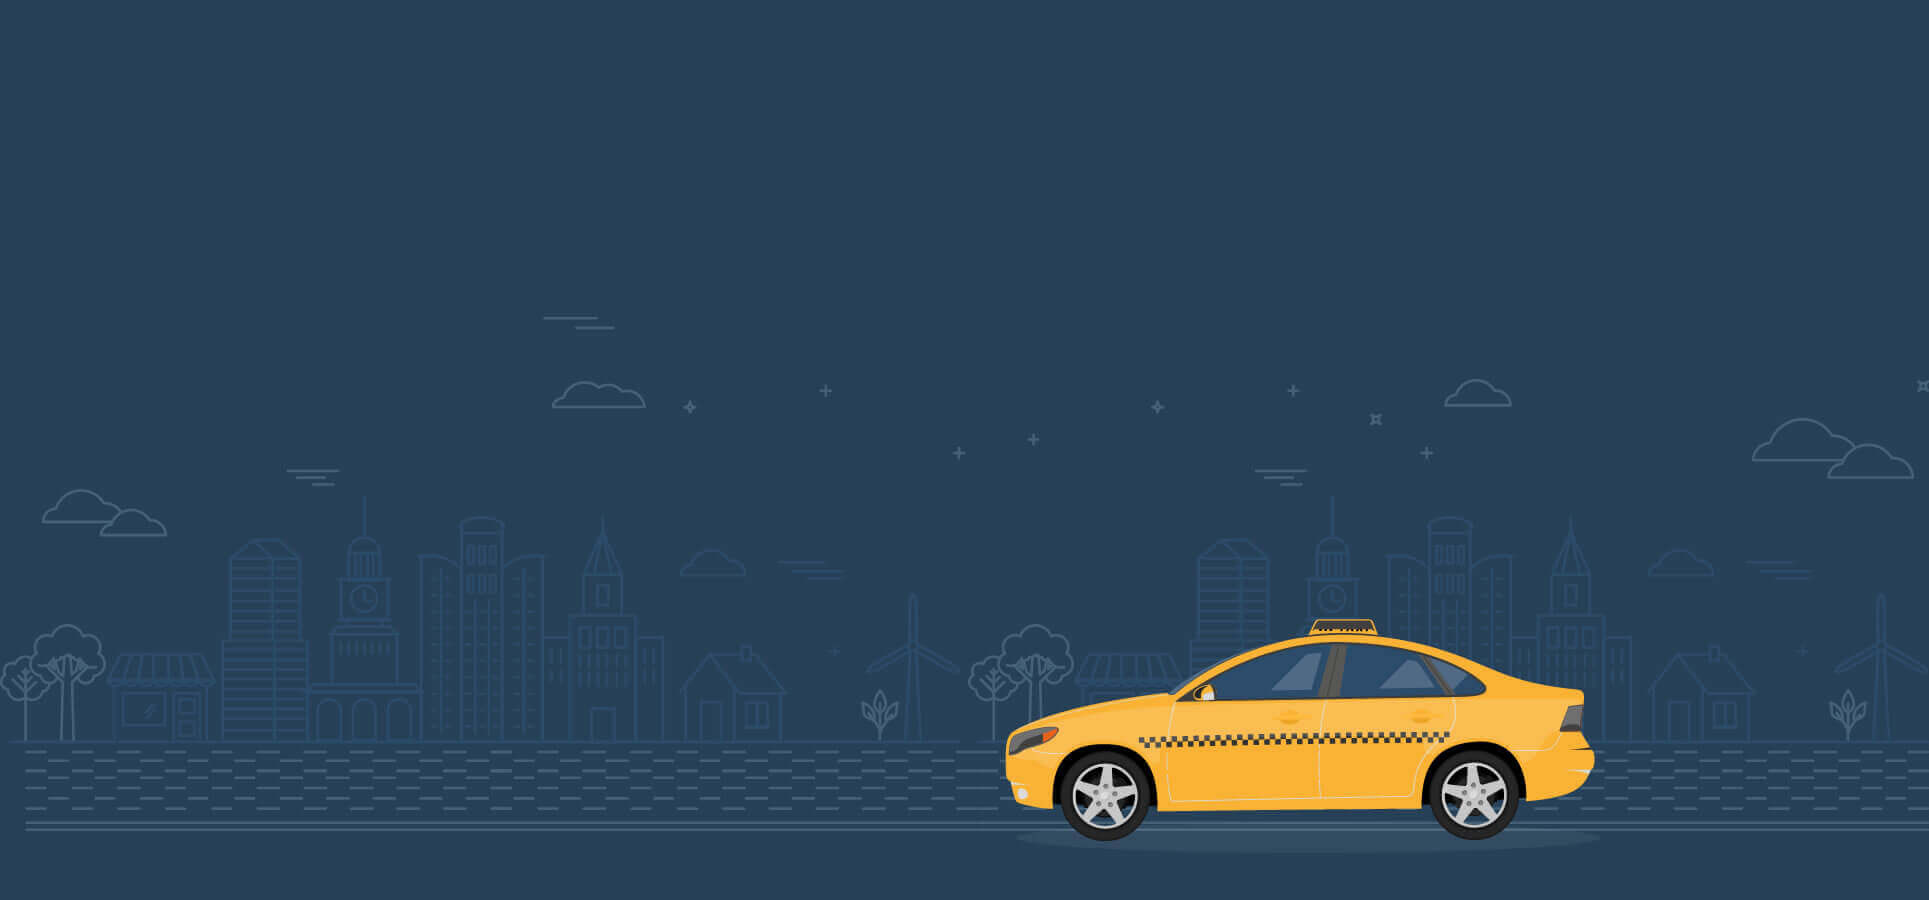 taxi-booking-services-on-demand